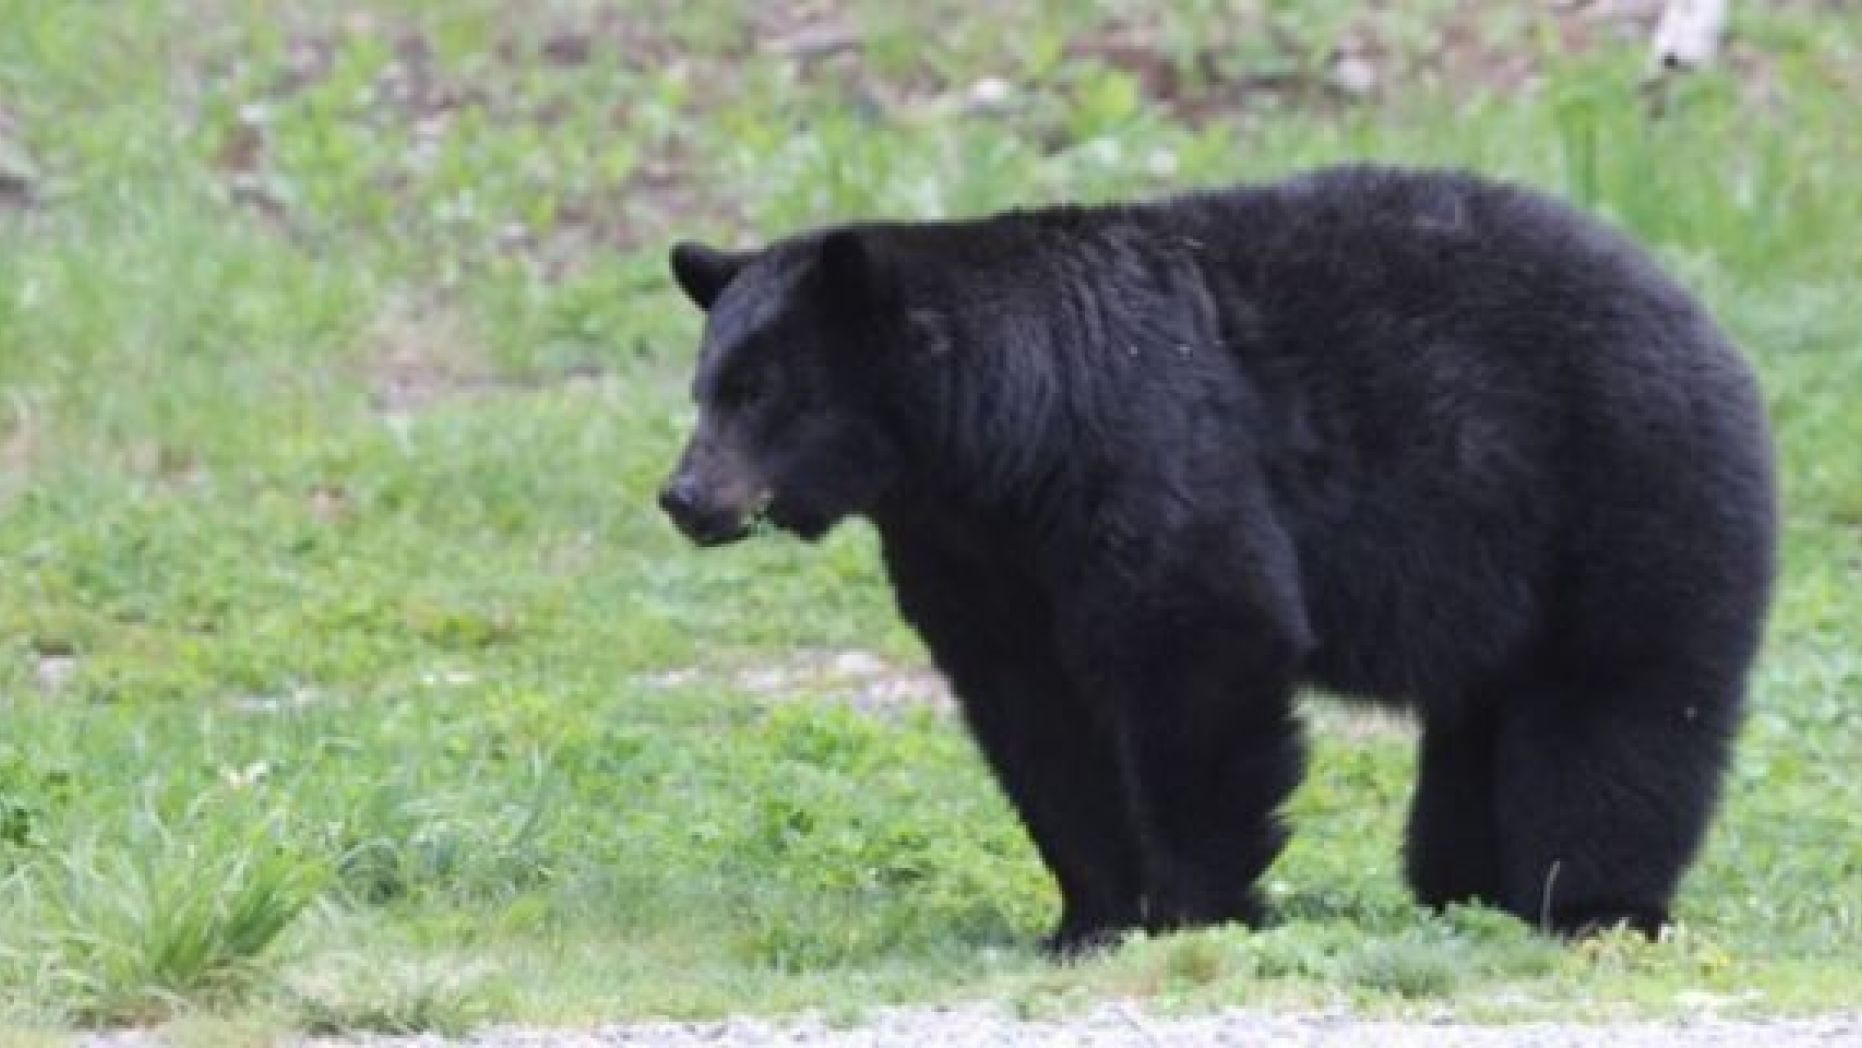 A woman was on the phone with her father when she was killed by a black bear in Canada.